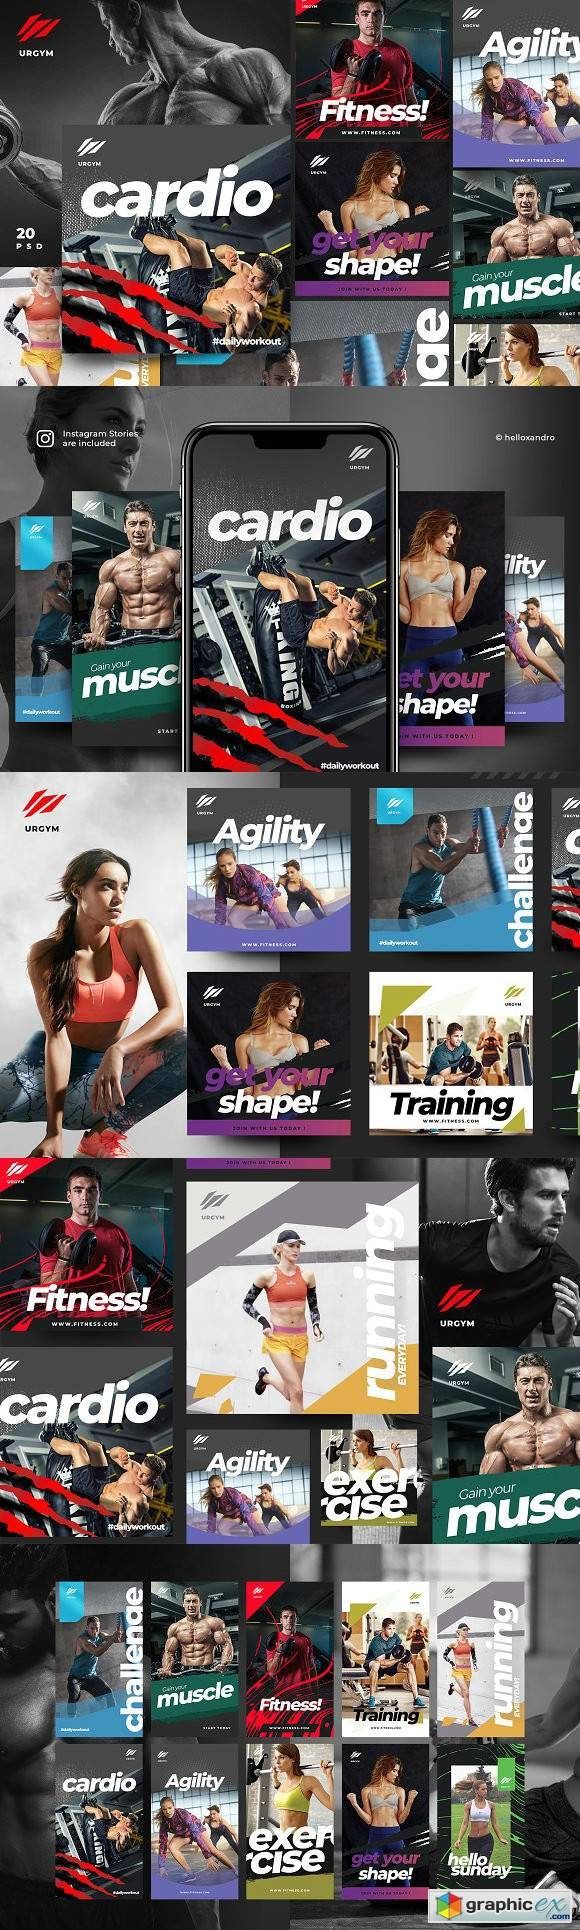 Fitness & Gym instagram pack 2.0